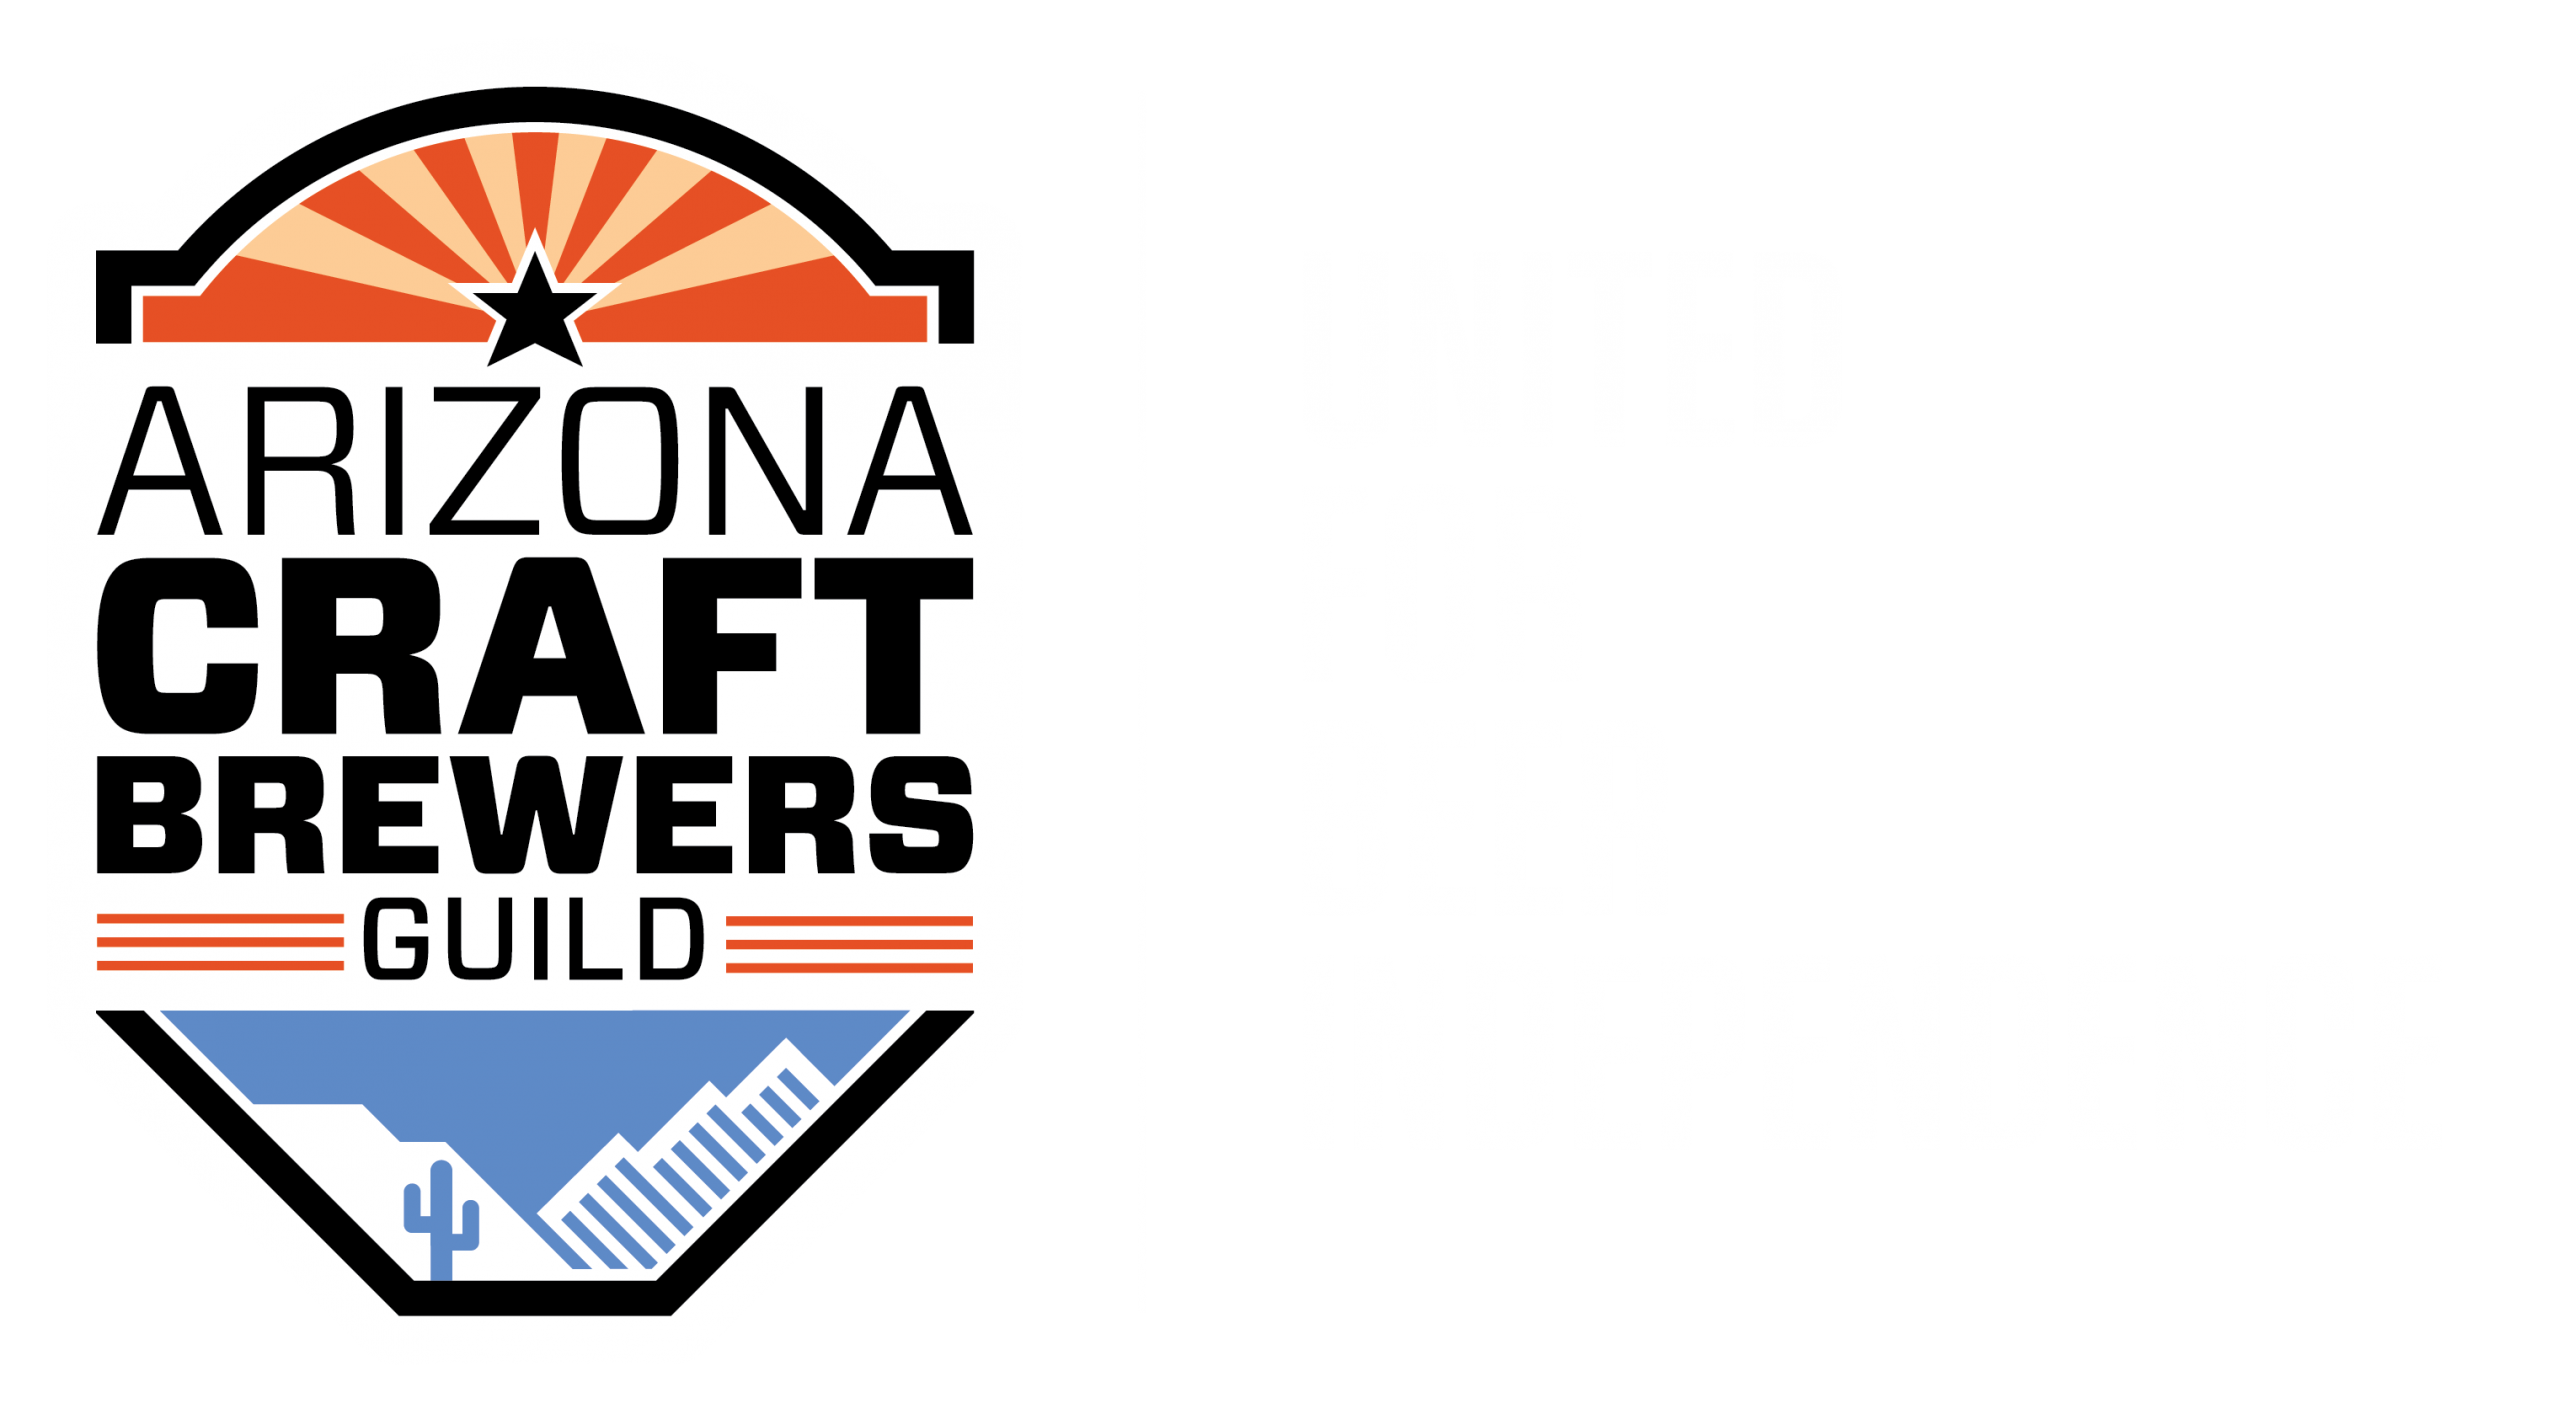 Starting Your Own Brewery | Arizona Craft Brewers Guild